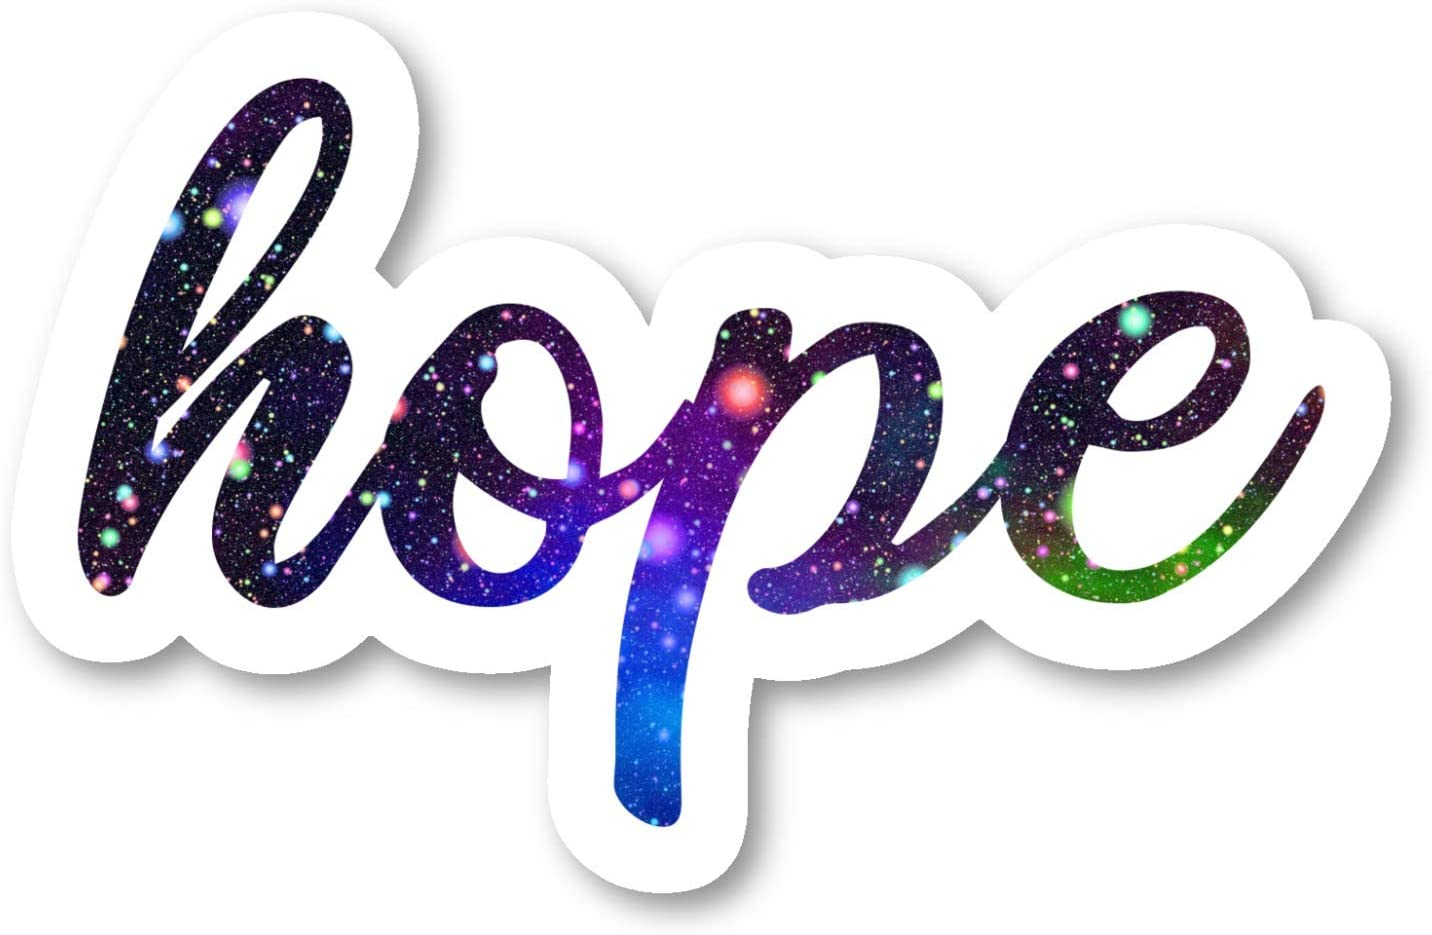 Hope Sticker Inspirational Quotes Galaxy Stickers - Phone Case Stickers - Laptop Stickers - 2.5 Inches Vinyl Decal - Laptop, Phone, Tablet Vinyl Decal Sticker S211133